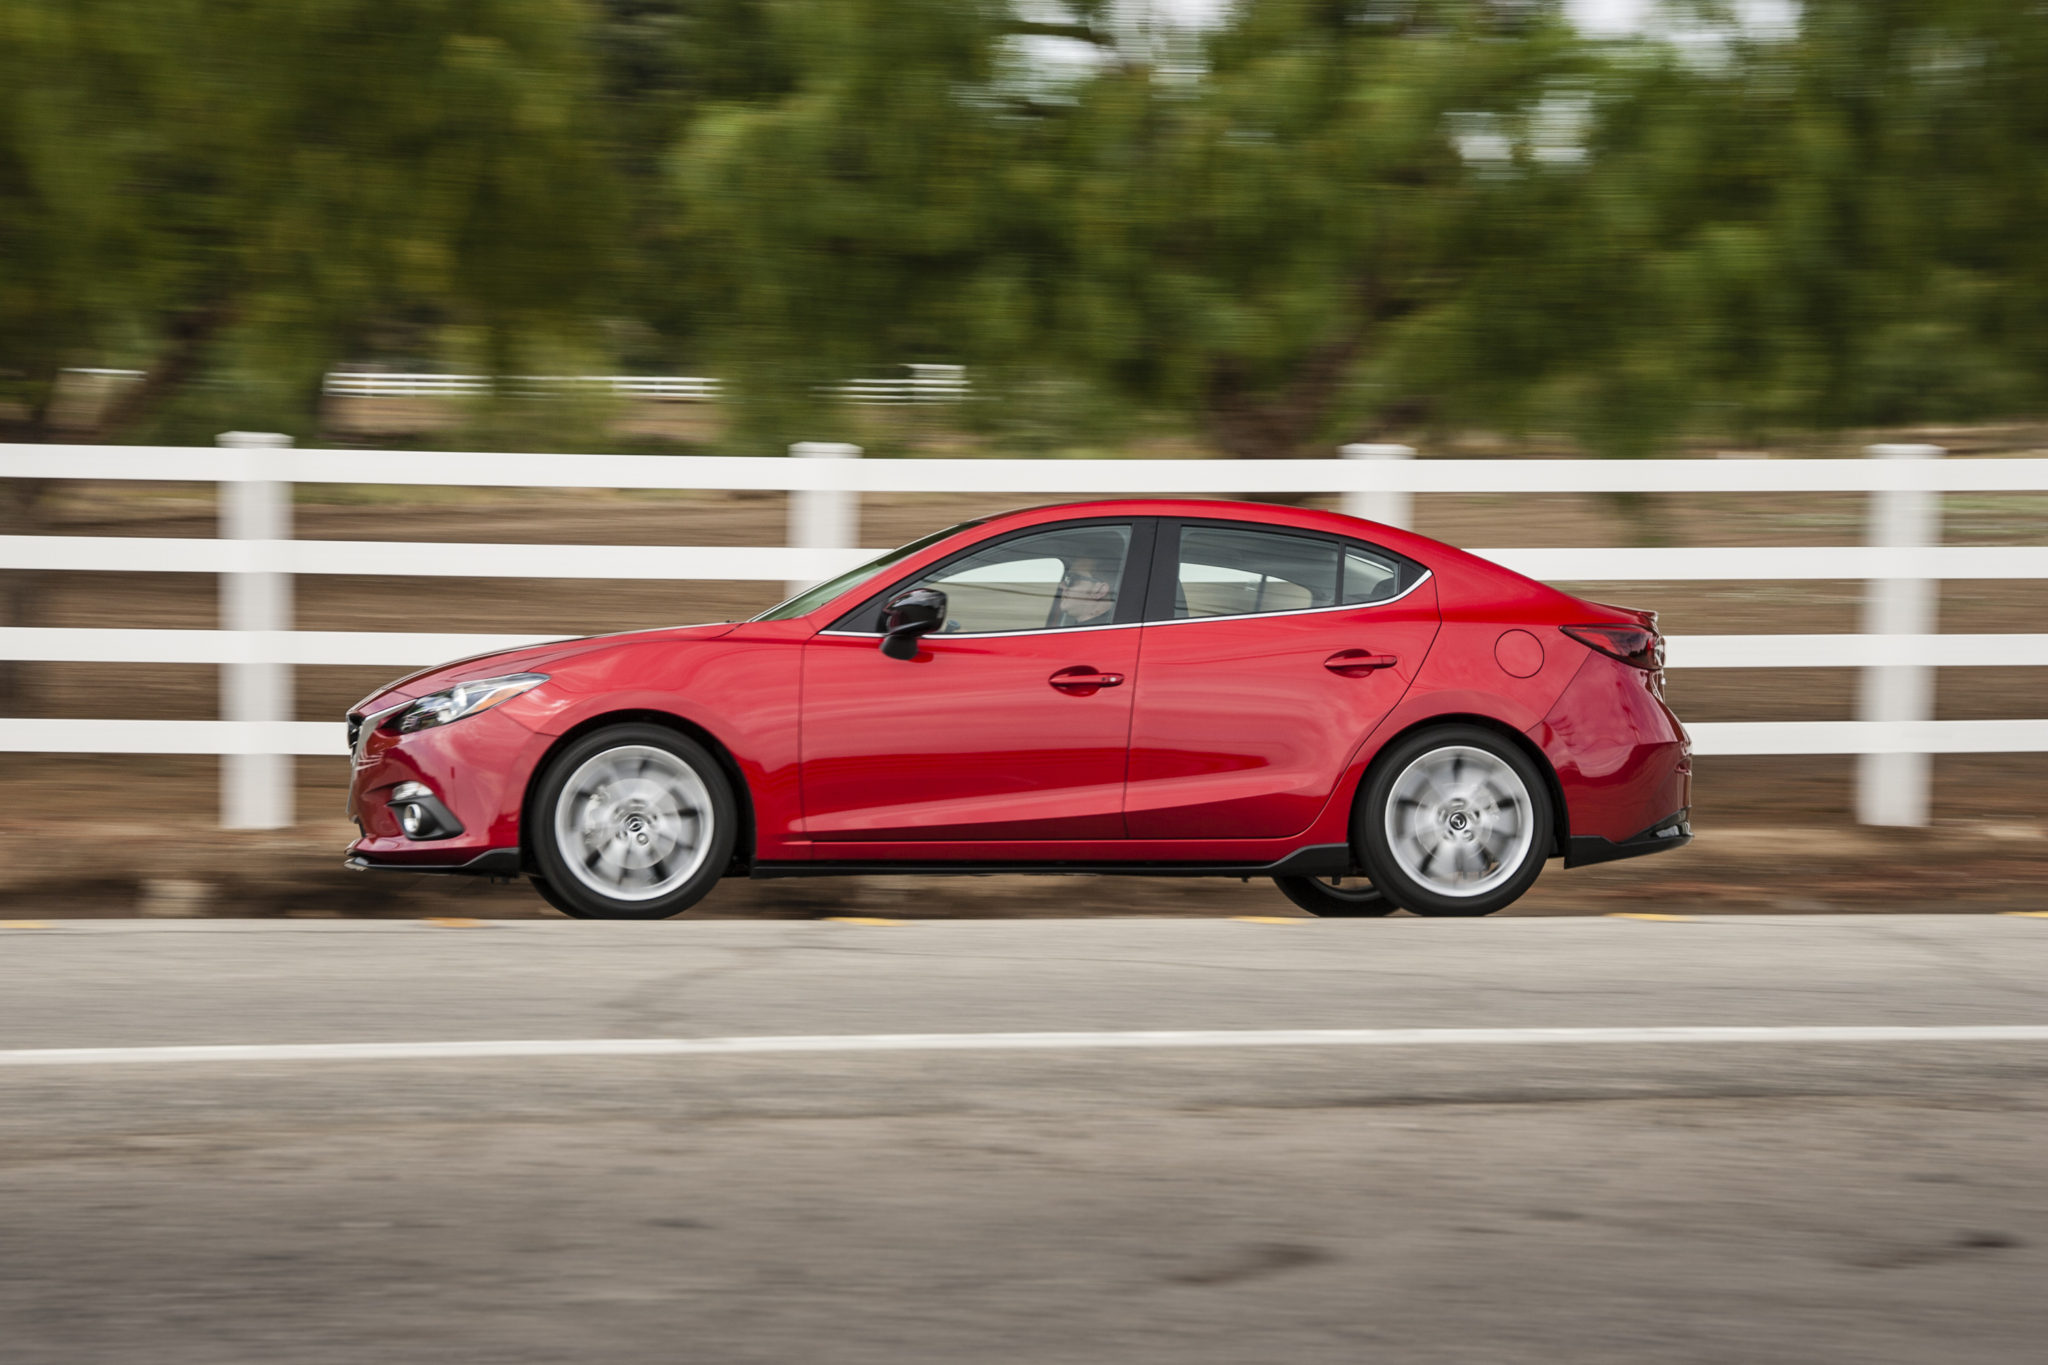 First Ride: 2016 Mazda Mazda3 Is Affordable, Easy To Park, Practical ...